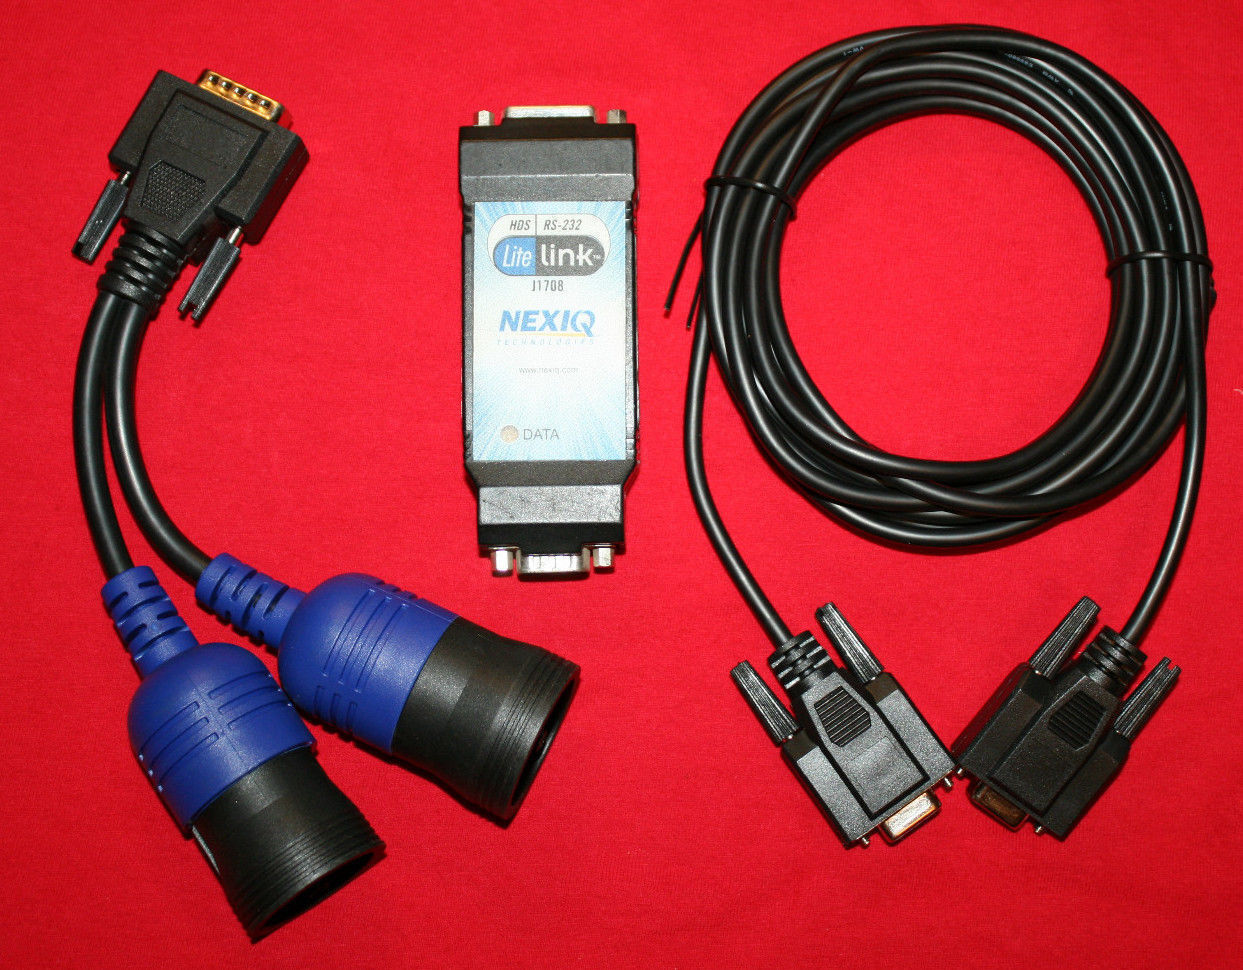 Nexiq Lite Link Hds Heavy Duty Truck Vehicle Interface Snap On Modis Magikey Usb Used For Sale